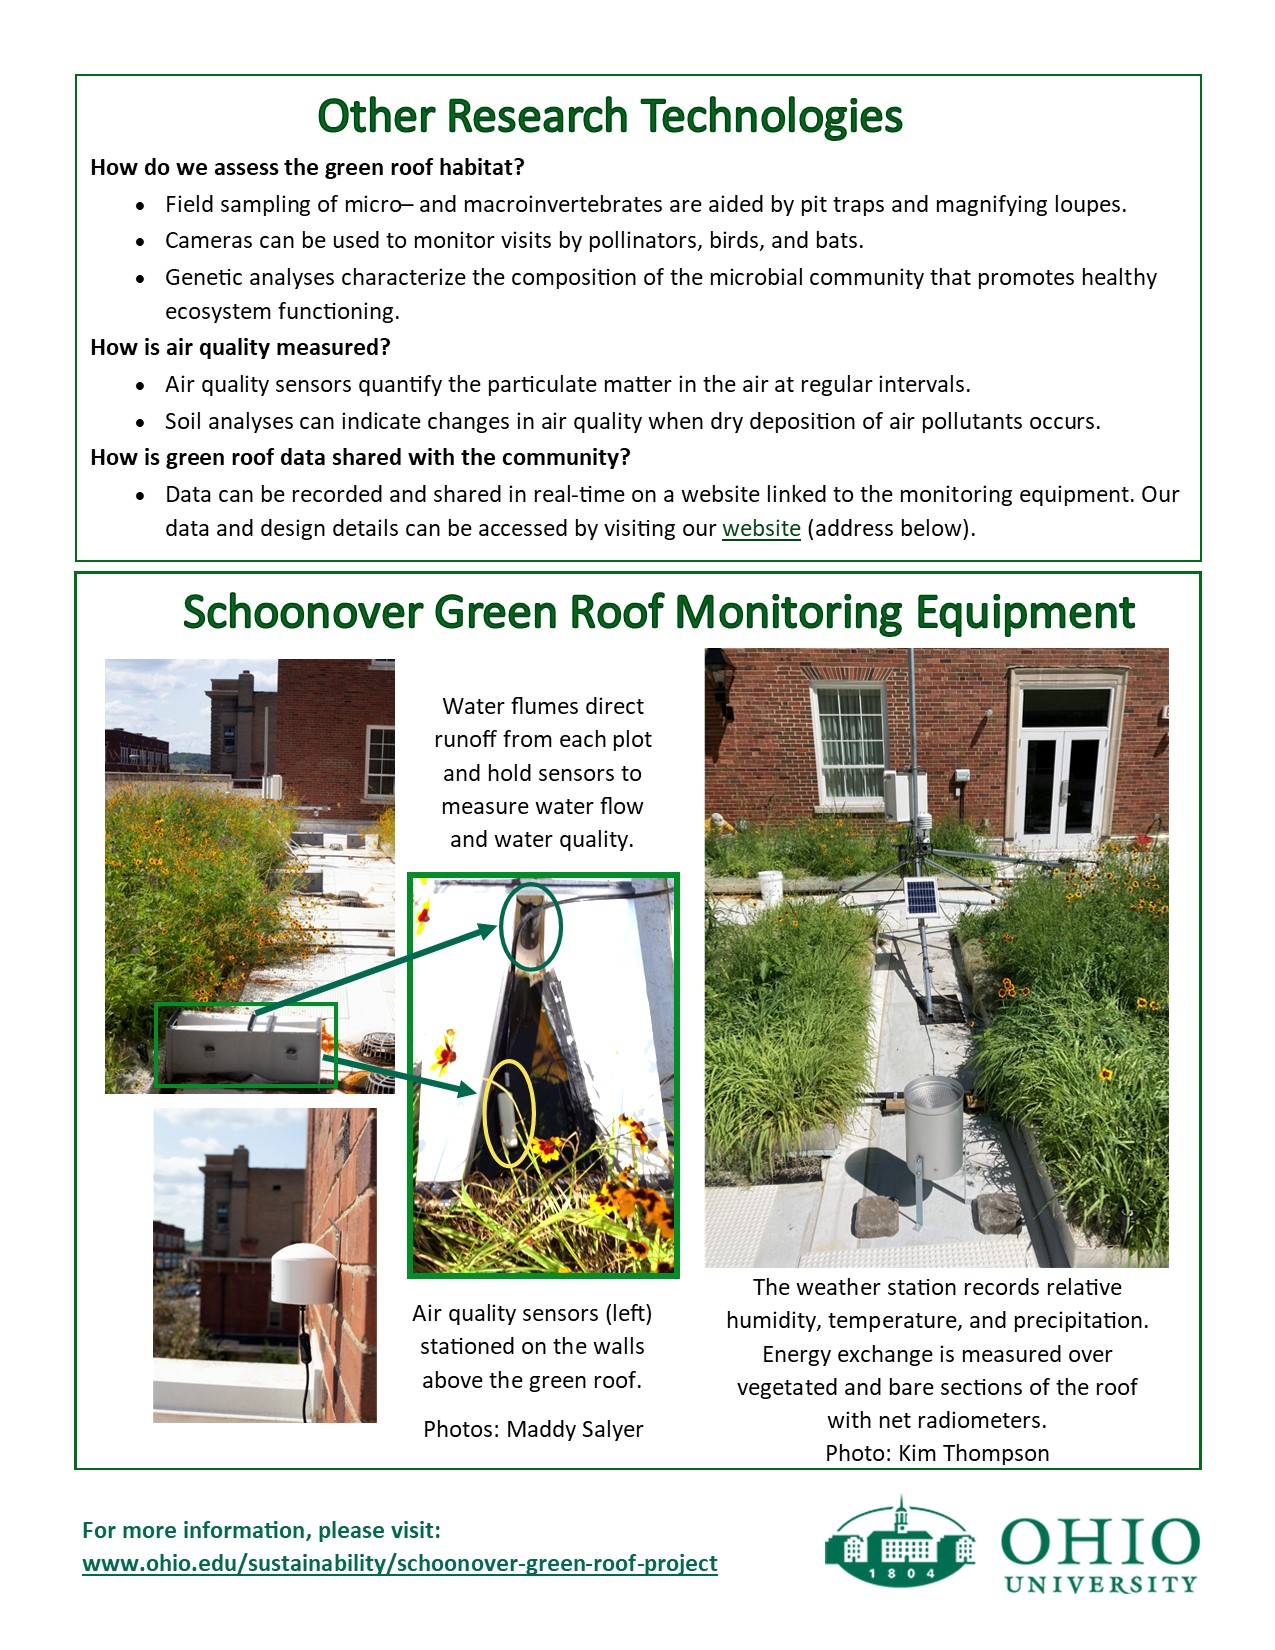 An informational flyer on technology used on green roofs page 2